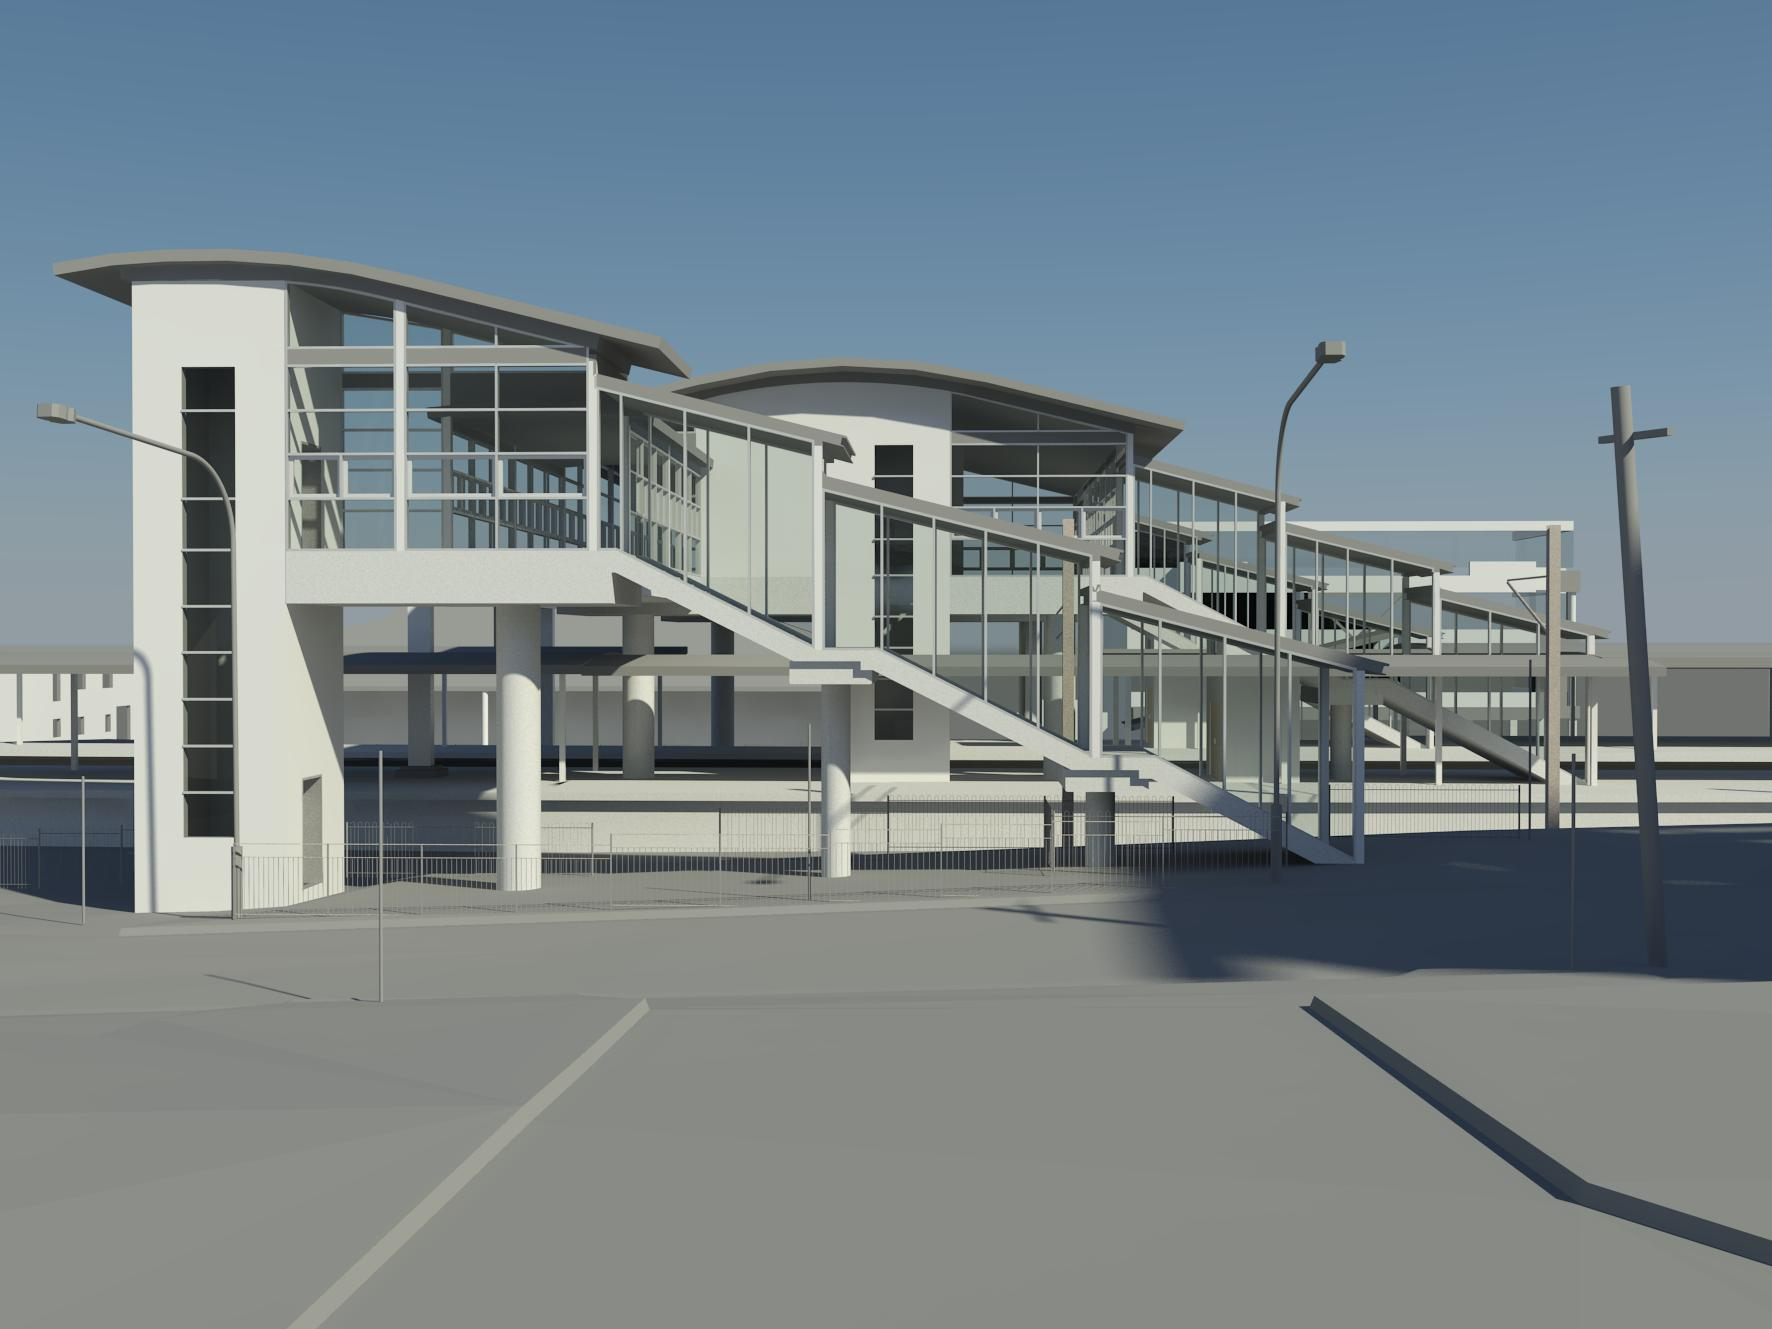 TRAIN STATION - Laser scan to Revit